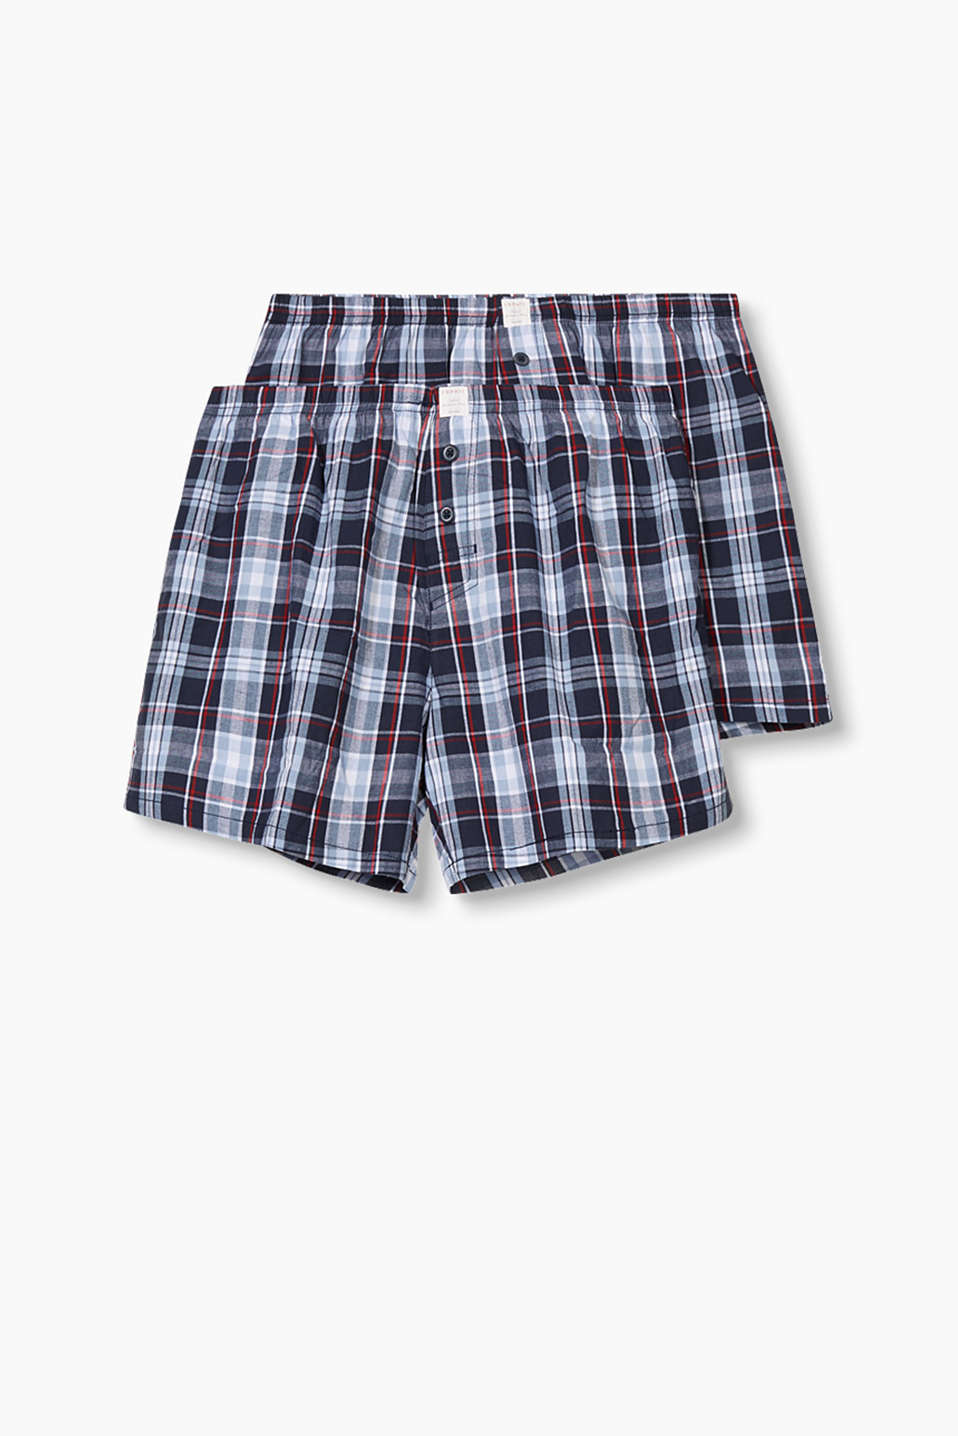 Esprit - Double pack of shorts, 100% cotton